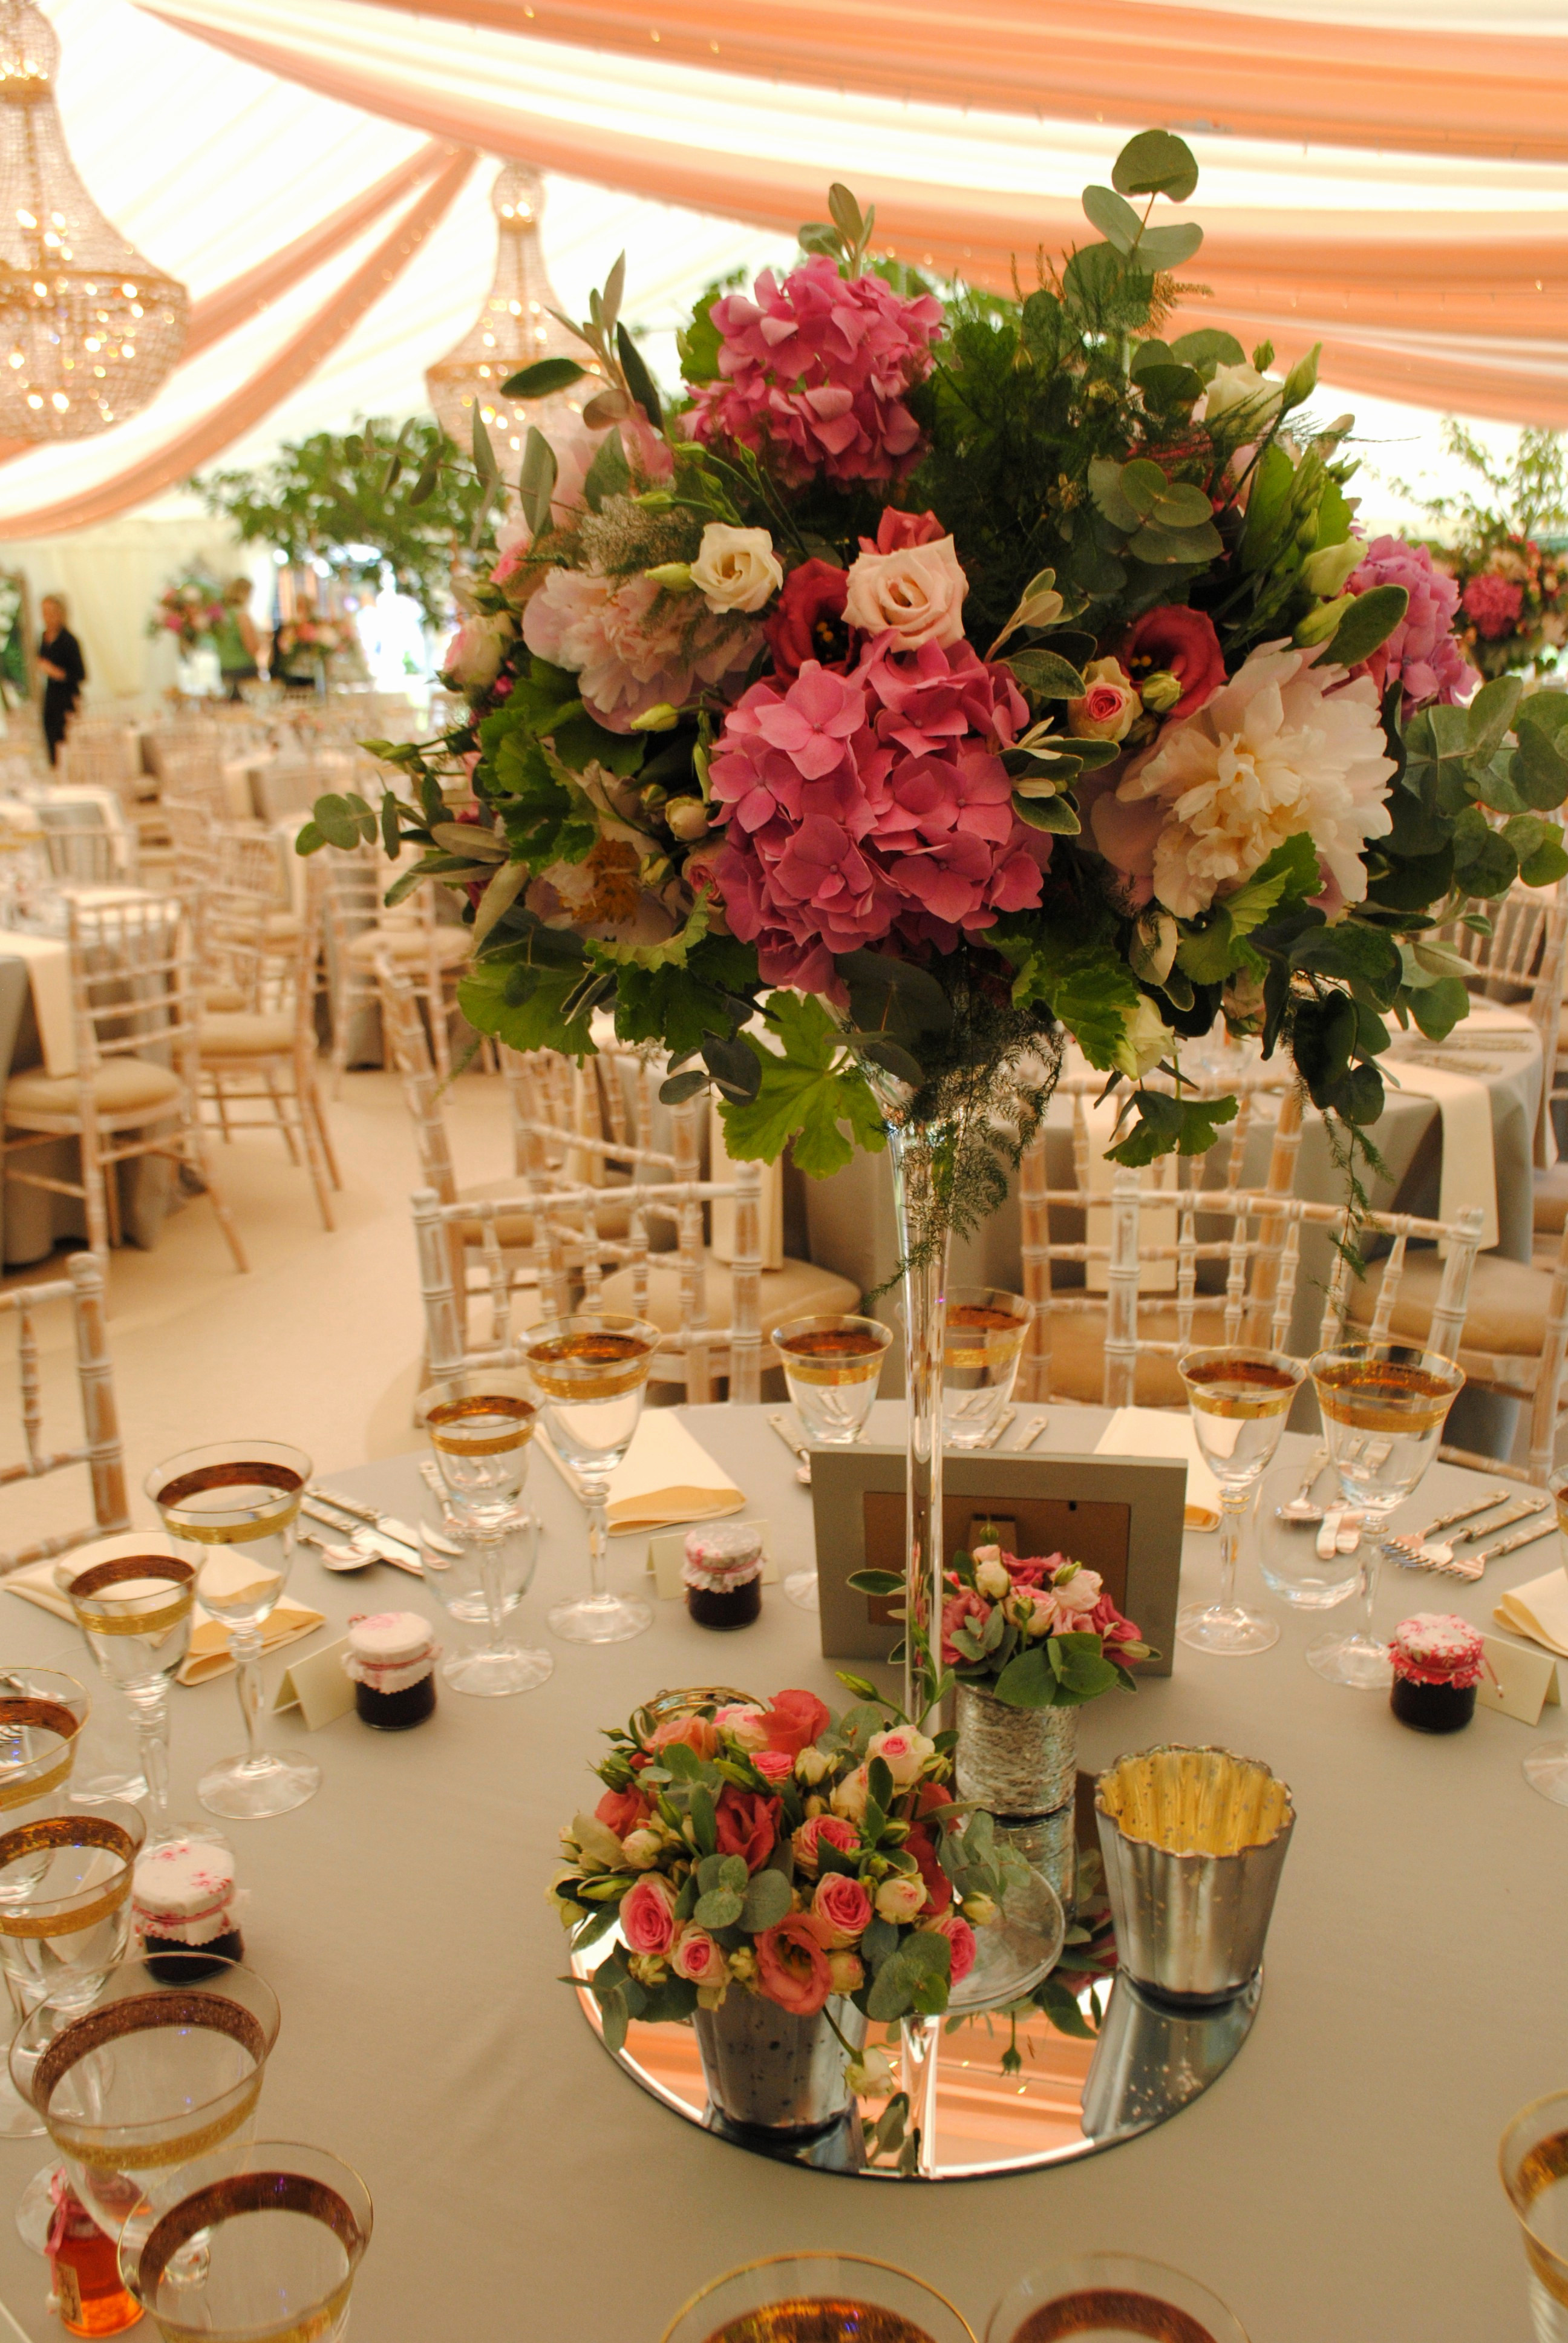 17 Trendy Wedding Centerpieces Using Vases 2021 free download wedding centerpieces using vases of wedding receptions table centerpieces new vases vase centerpieces with regard to wedding receptions table centerpieces awesome flower table decorations in